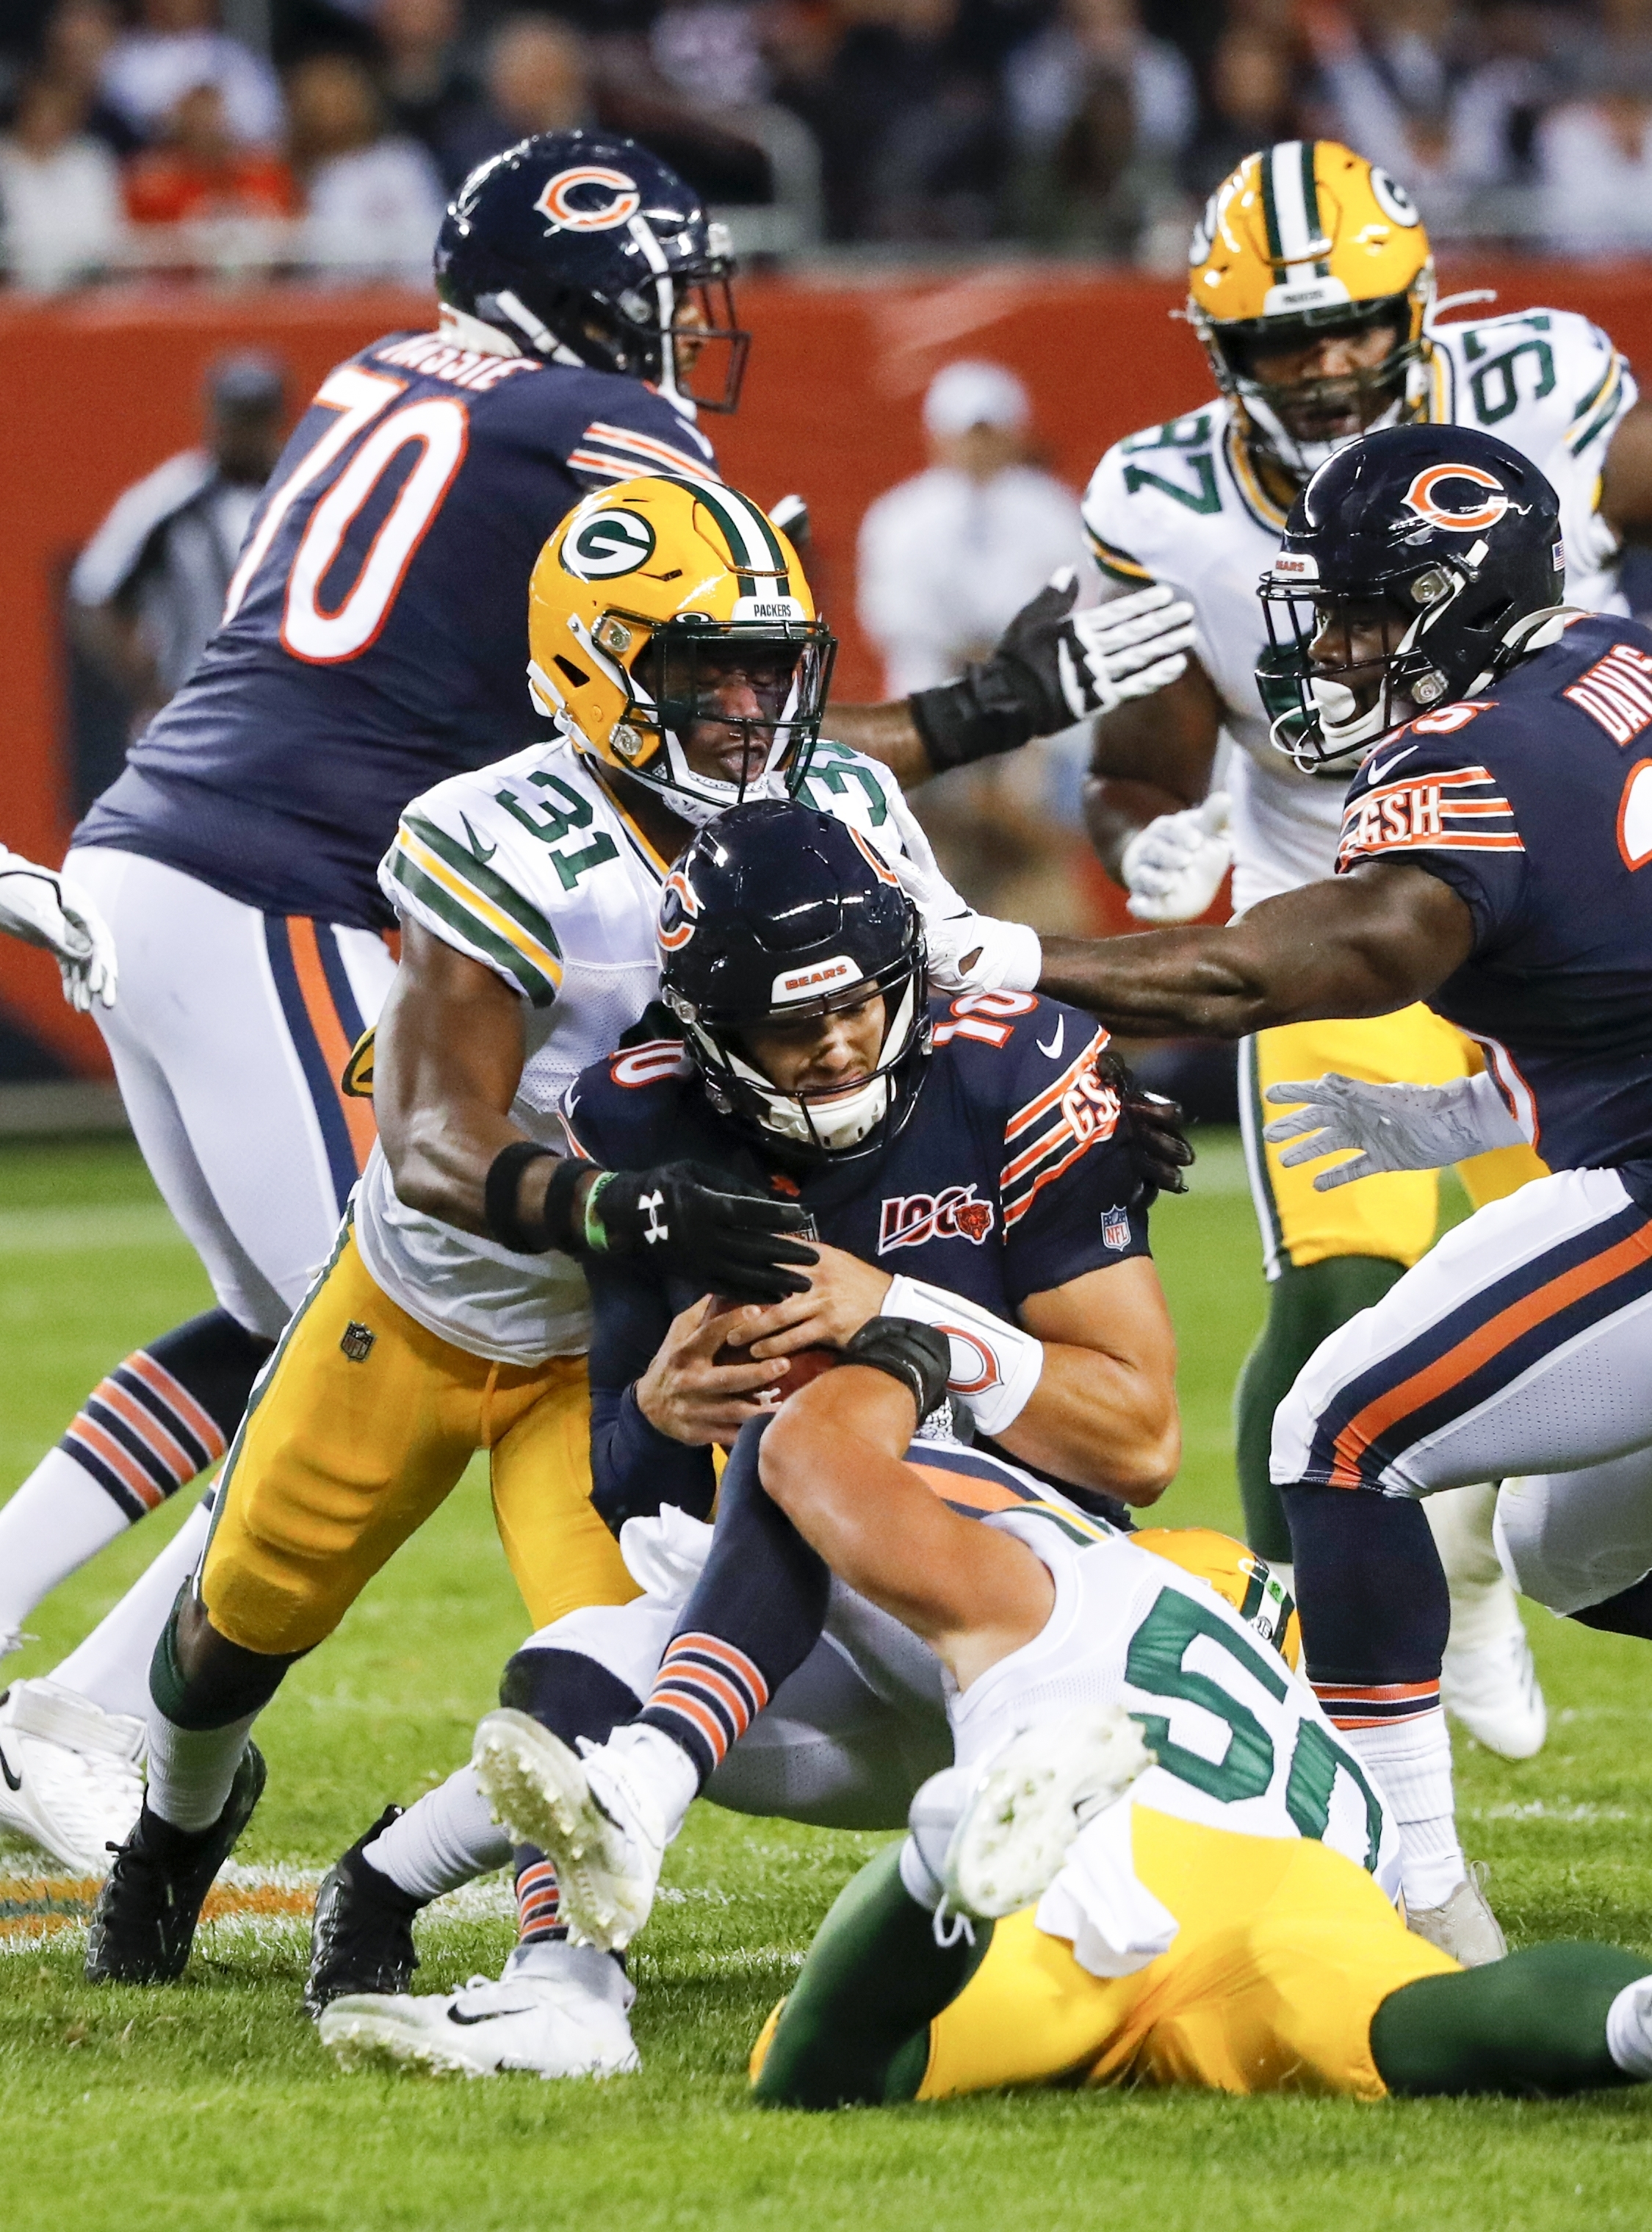 The Bears did not look like the team many expected to be in the opening loss to the Green Bay Packers.  Photo by The Associated Press.